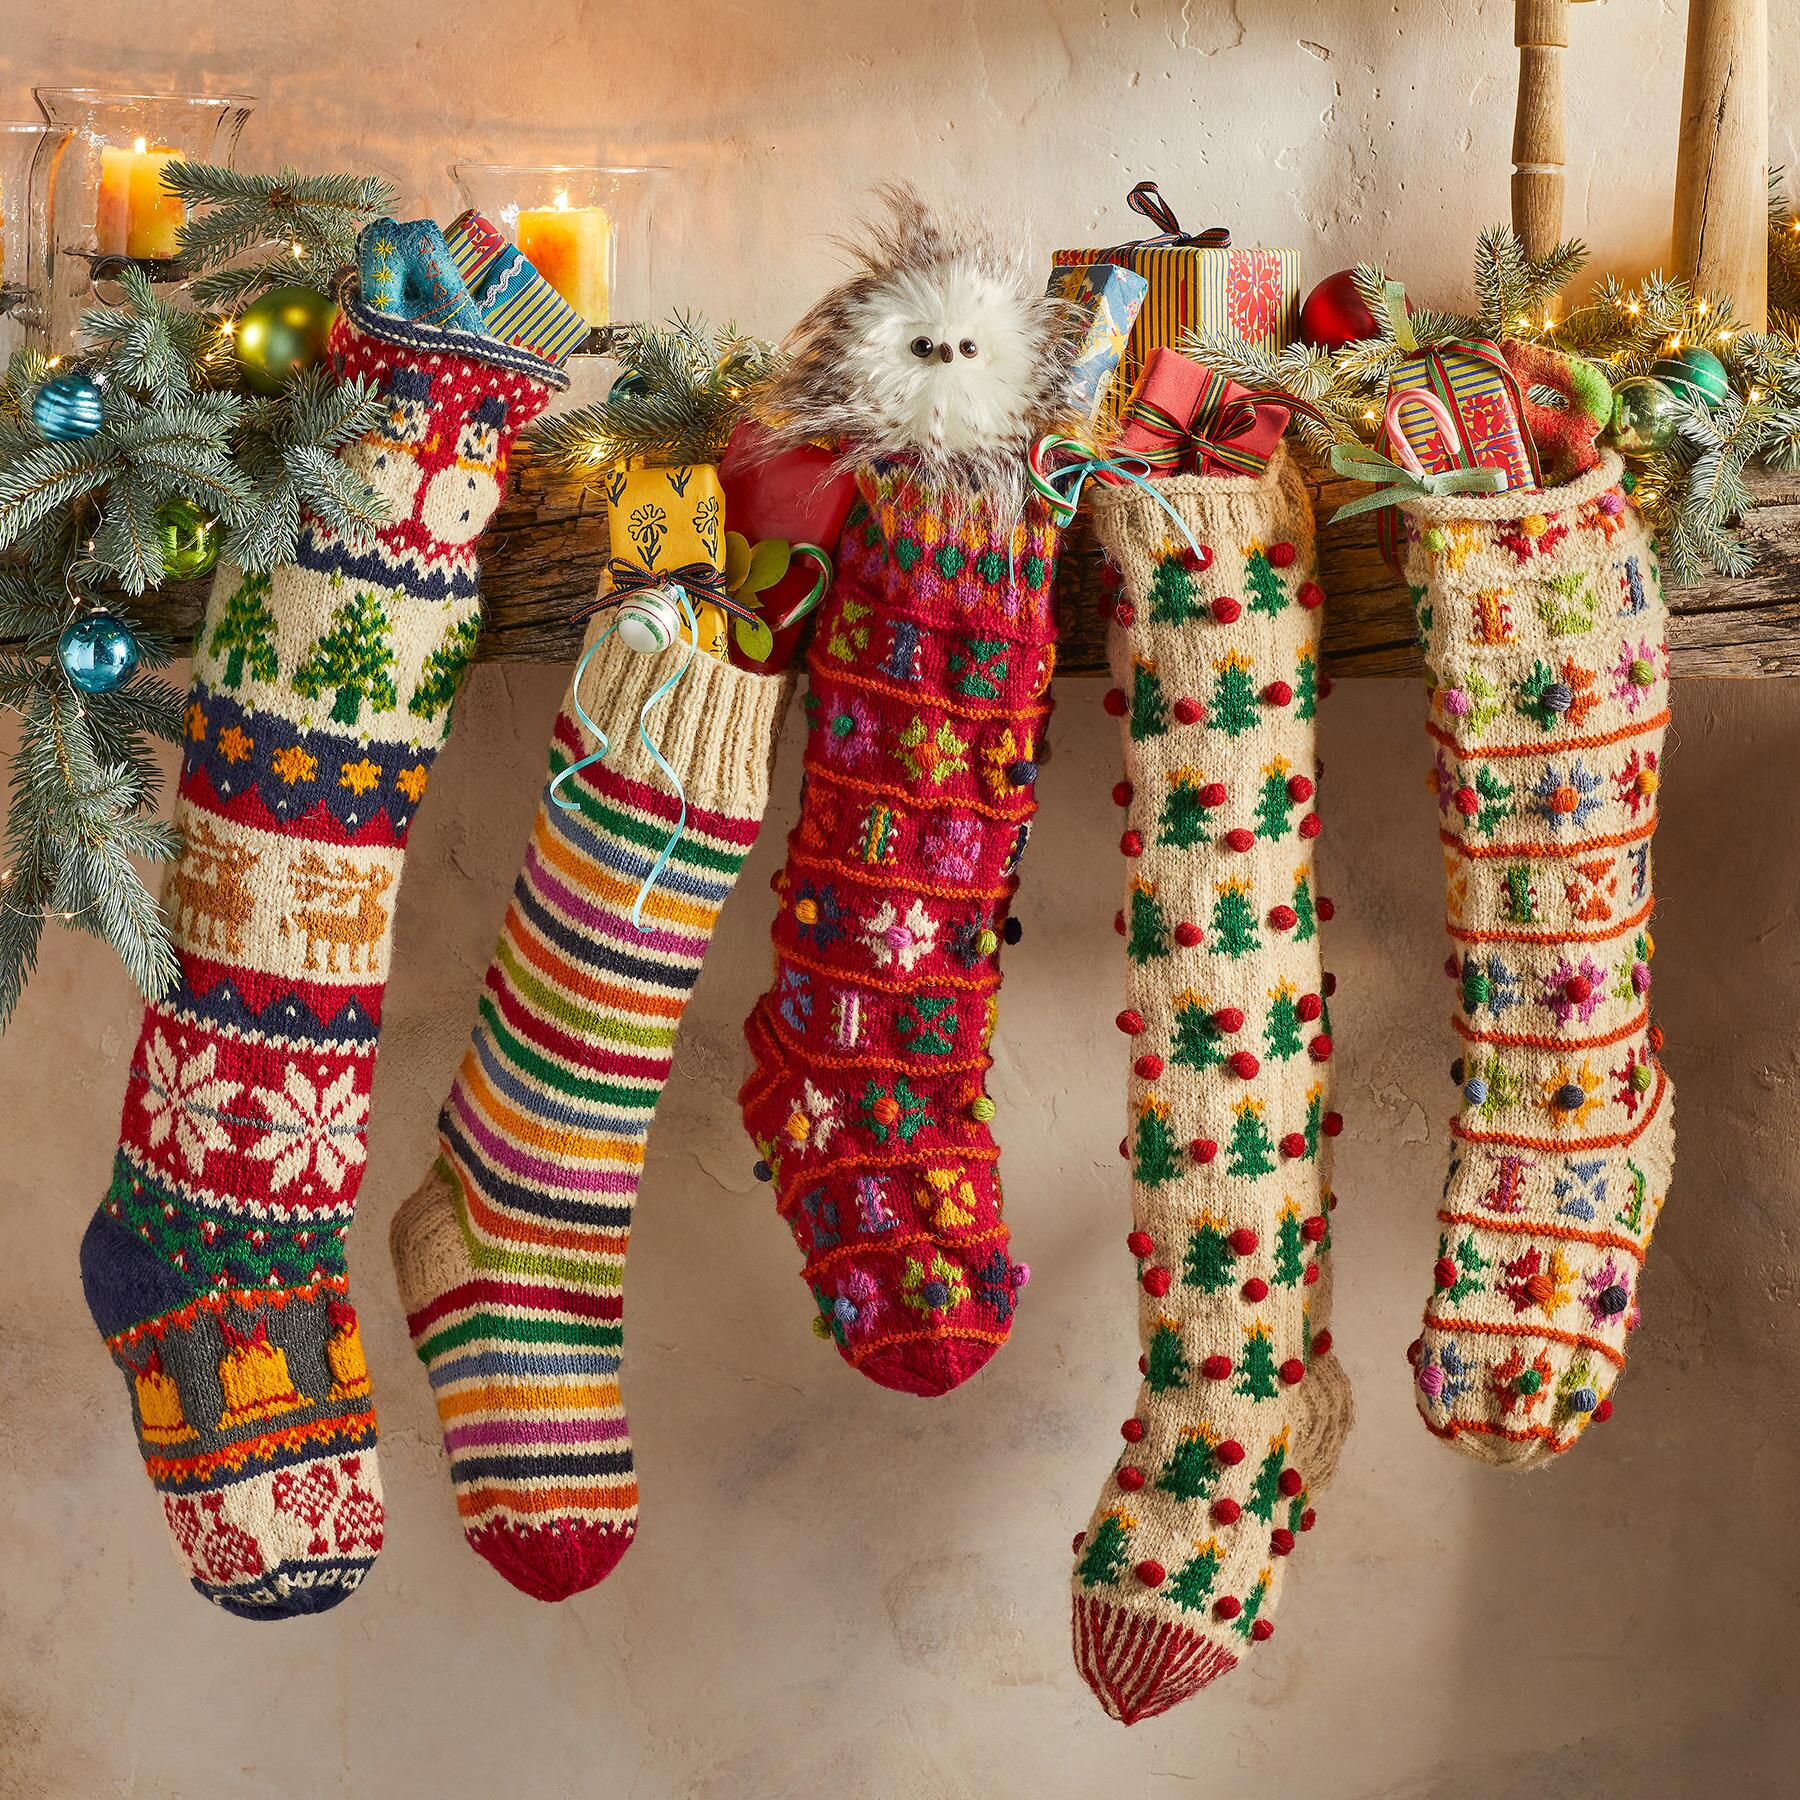 HEIRLOOM CANDY STRIPES STOCKING: View 2